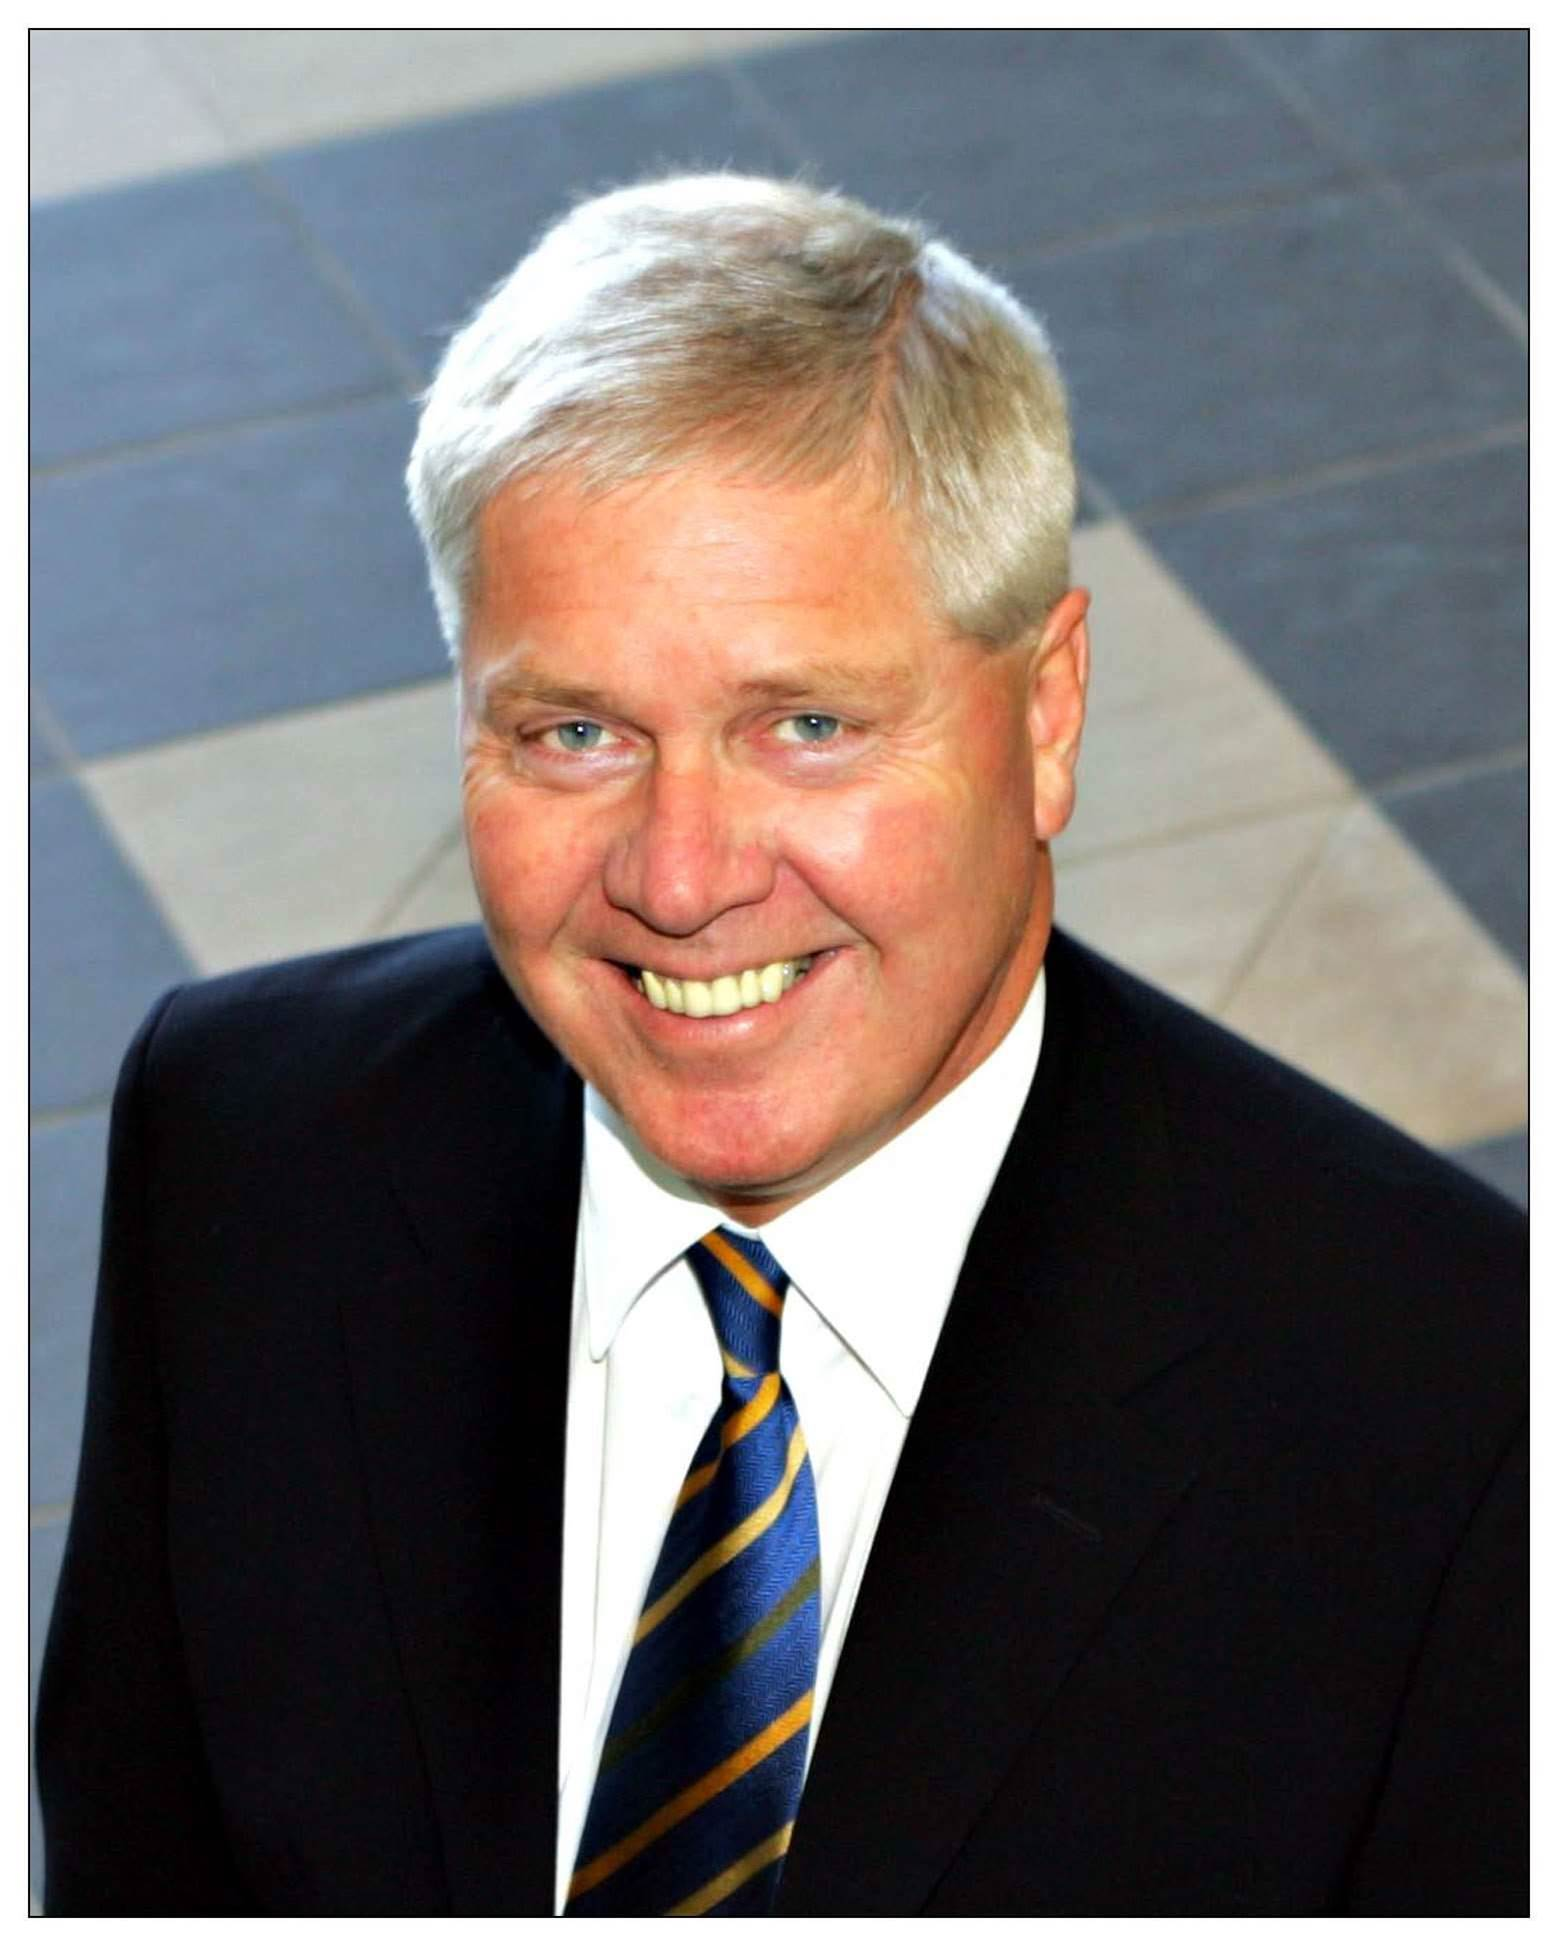 Oracle's A/NZ boss promoted to APAC role